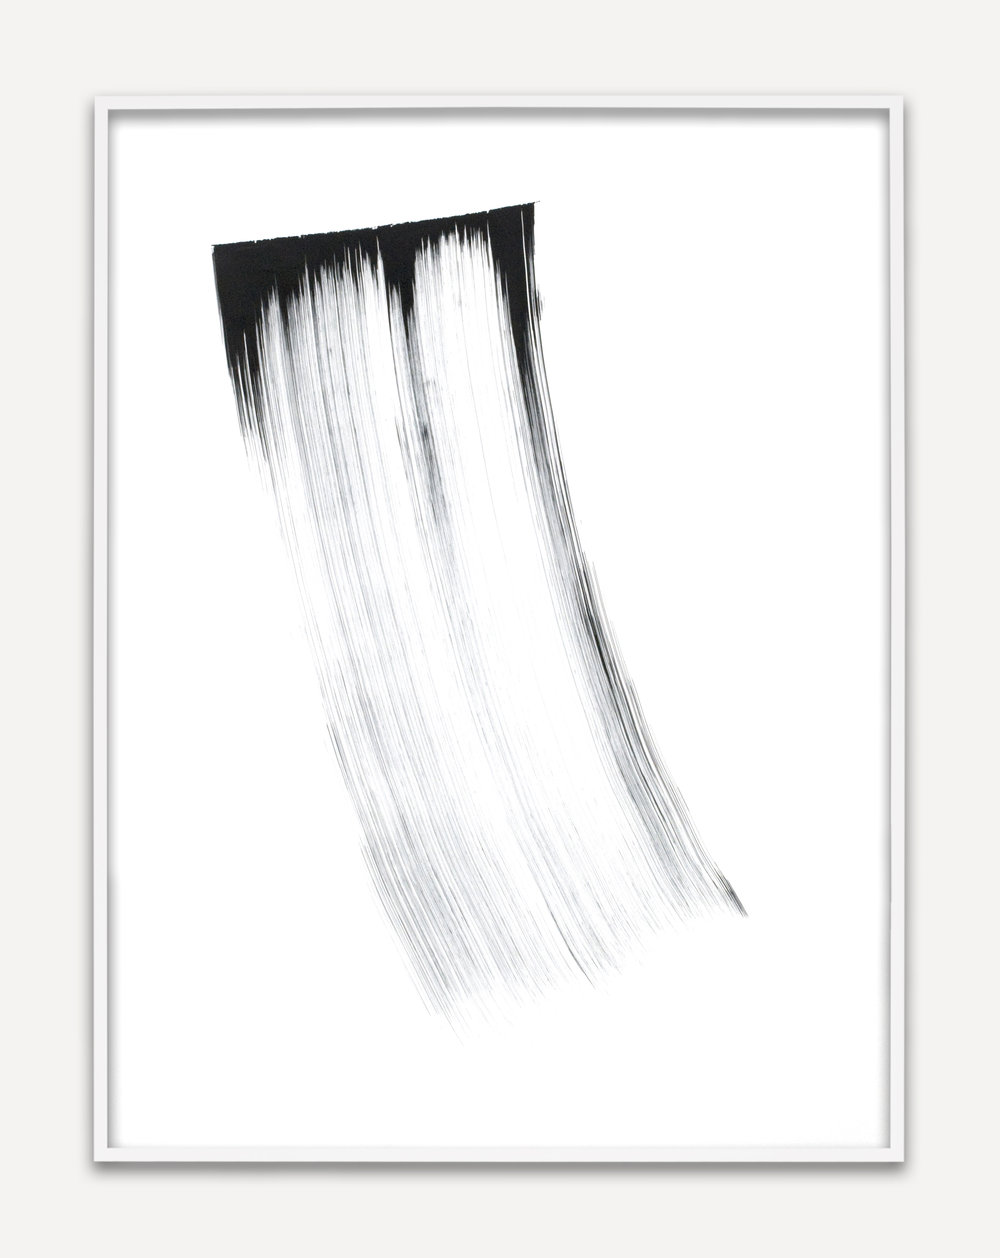 Replacement Ink for Epson Printers (Black 446006) on Epson Premium Glossy Paper, 2014 unique archival pigment print 153,5 x 113,5 cm - 60 3/8 x 44 5/8 inches (framed)